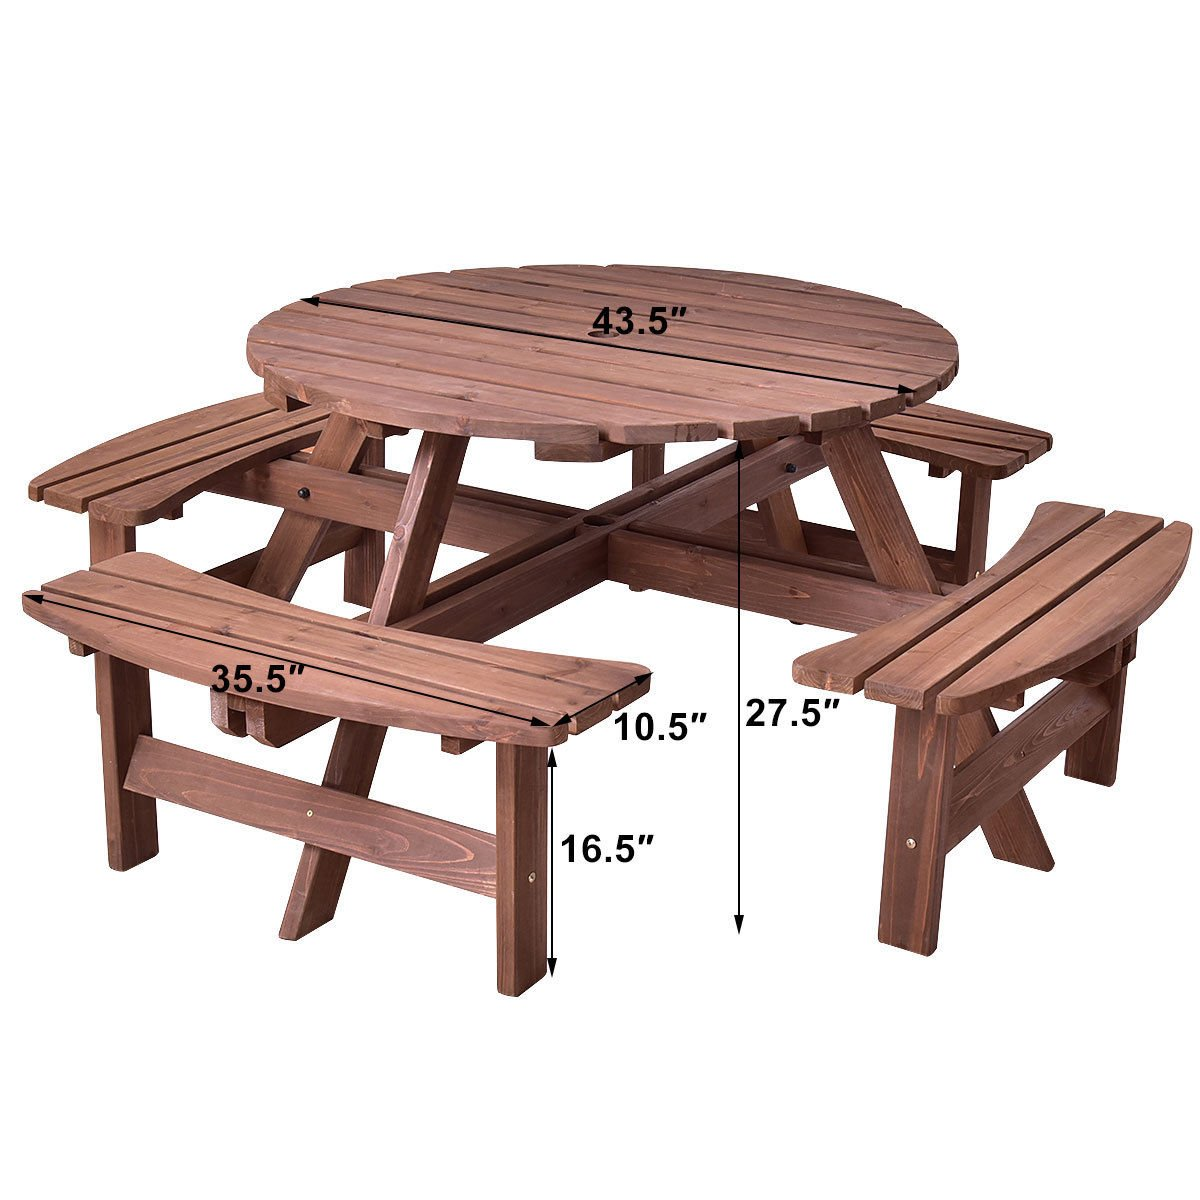 Giantex 8 Person Wooden Picnic Table Set with Wood Bench, with Umbrella Hold Design, Perfect for Outdoor Garden Yard Pub Beer Dining, Dark Brown